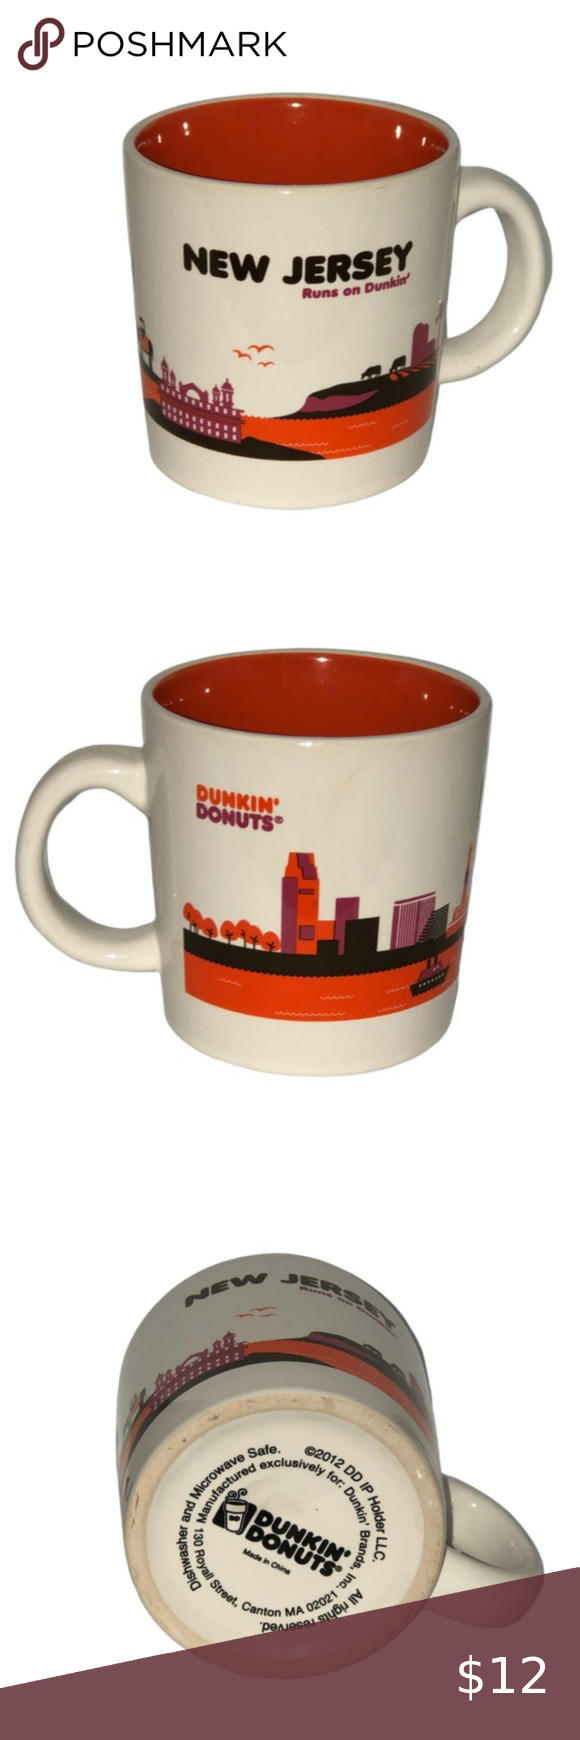 New Jersey DUNKIN DONUTS Coffee Cup New Jersey DUNKIN